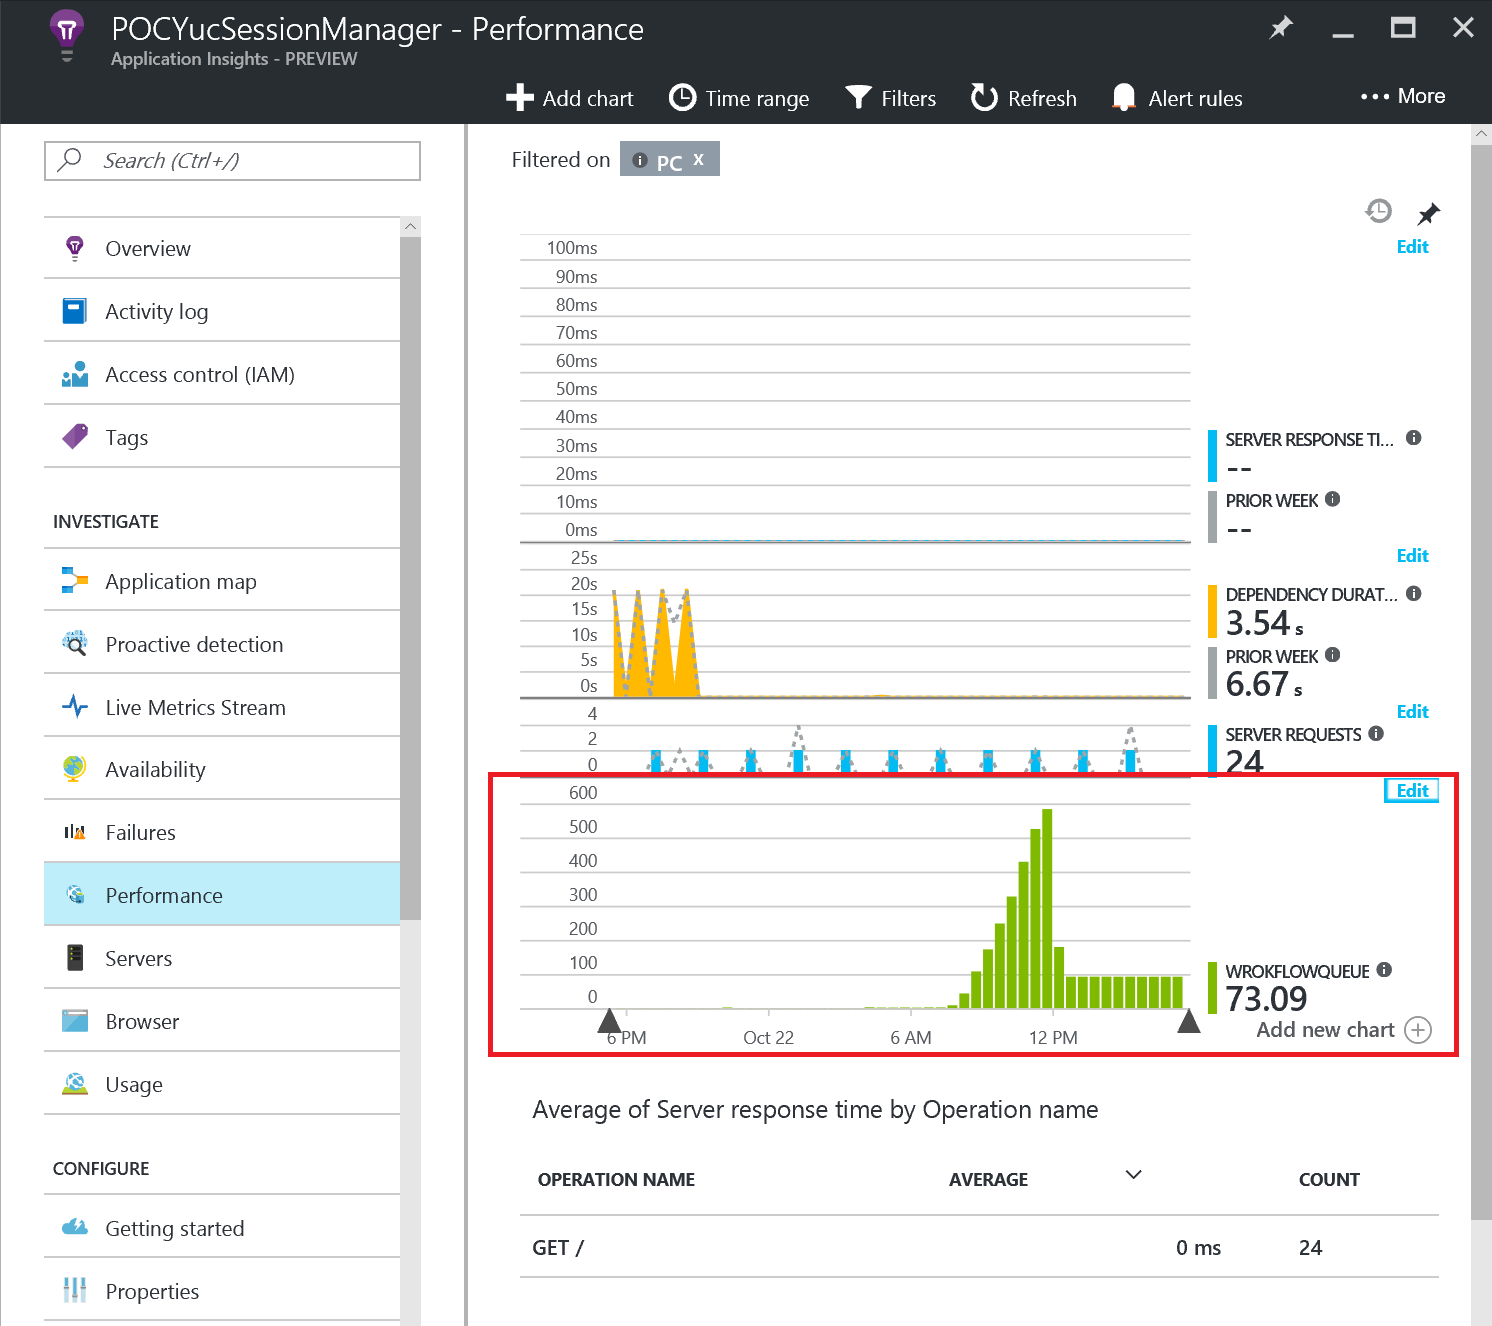 08_applicationinsights_cutommetrics